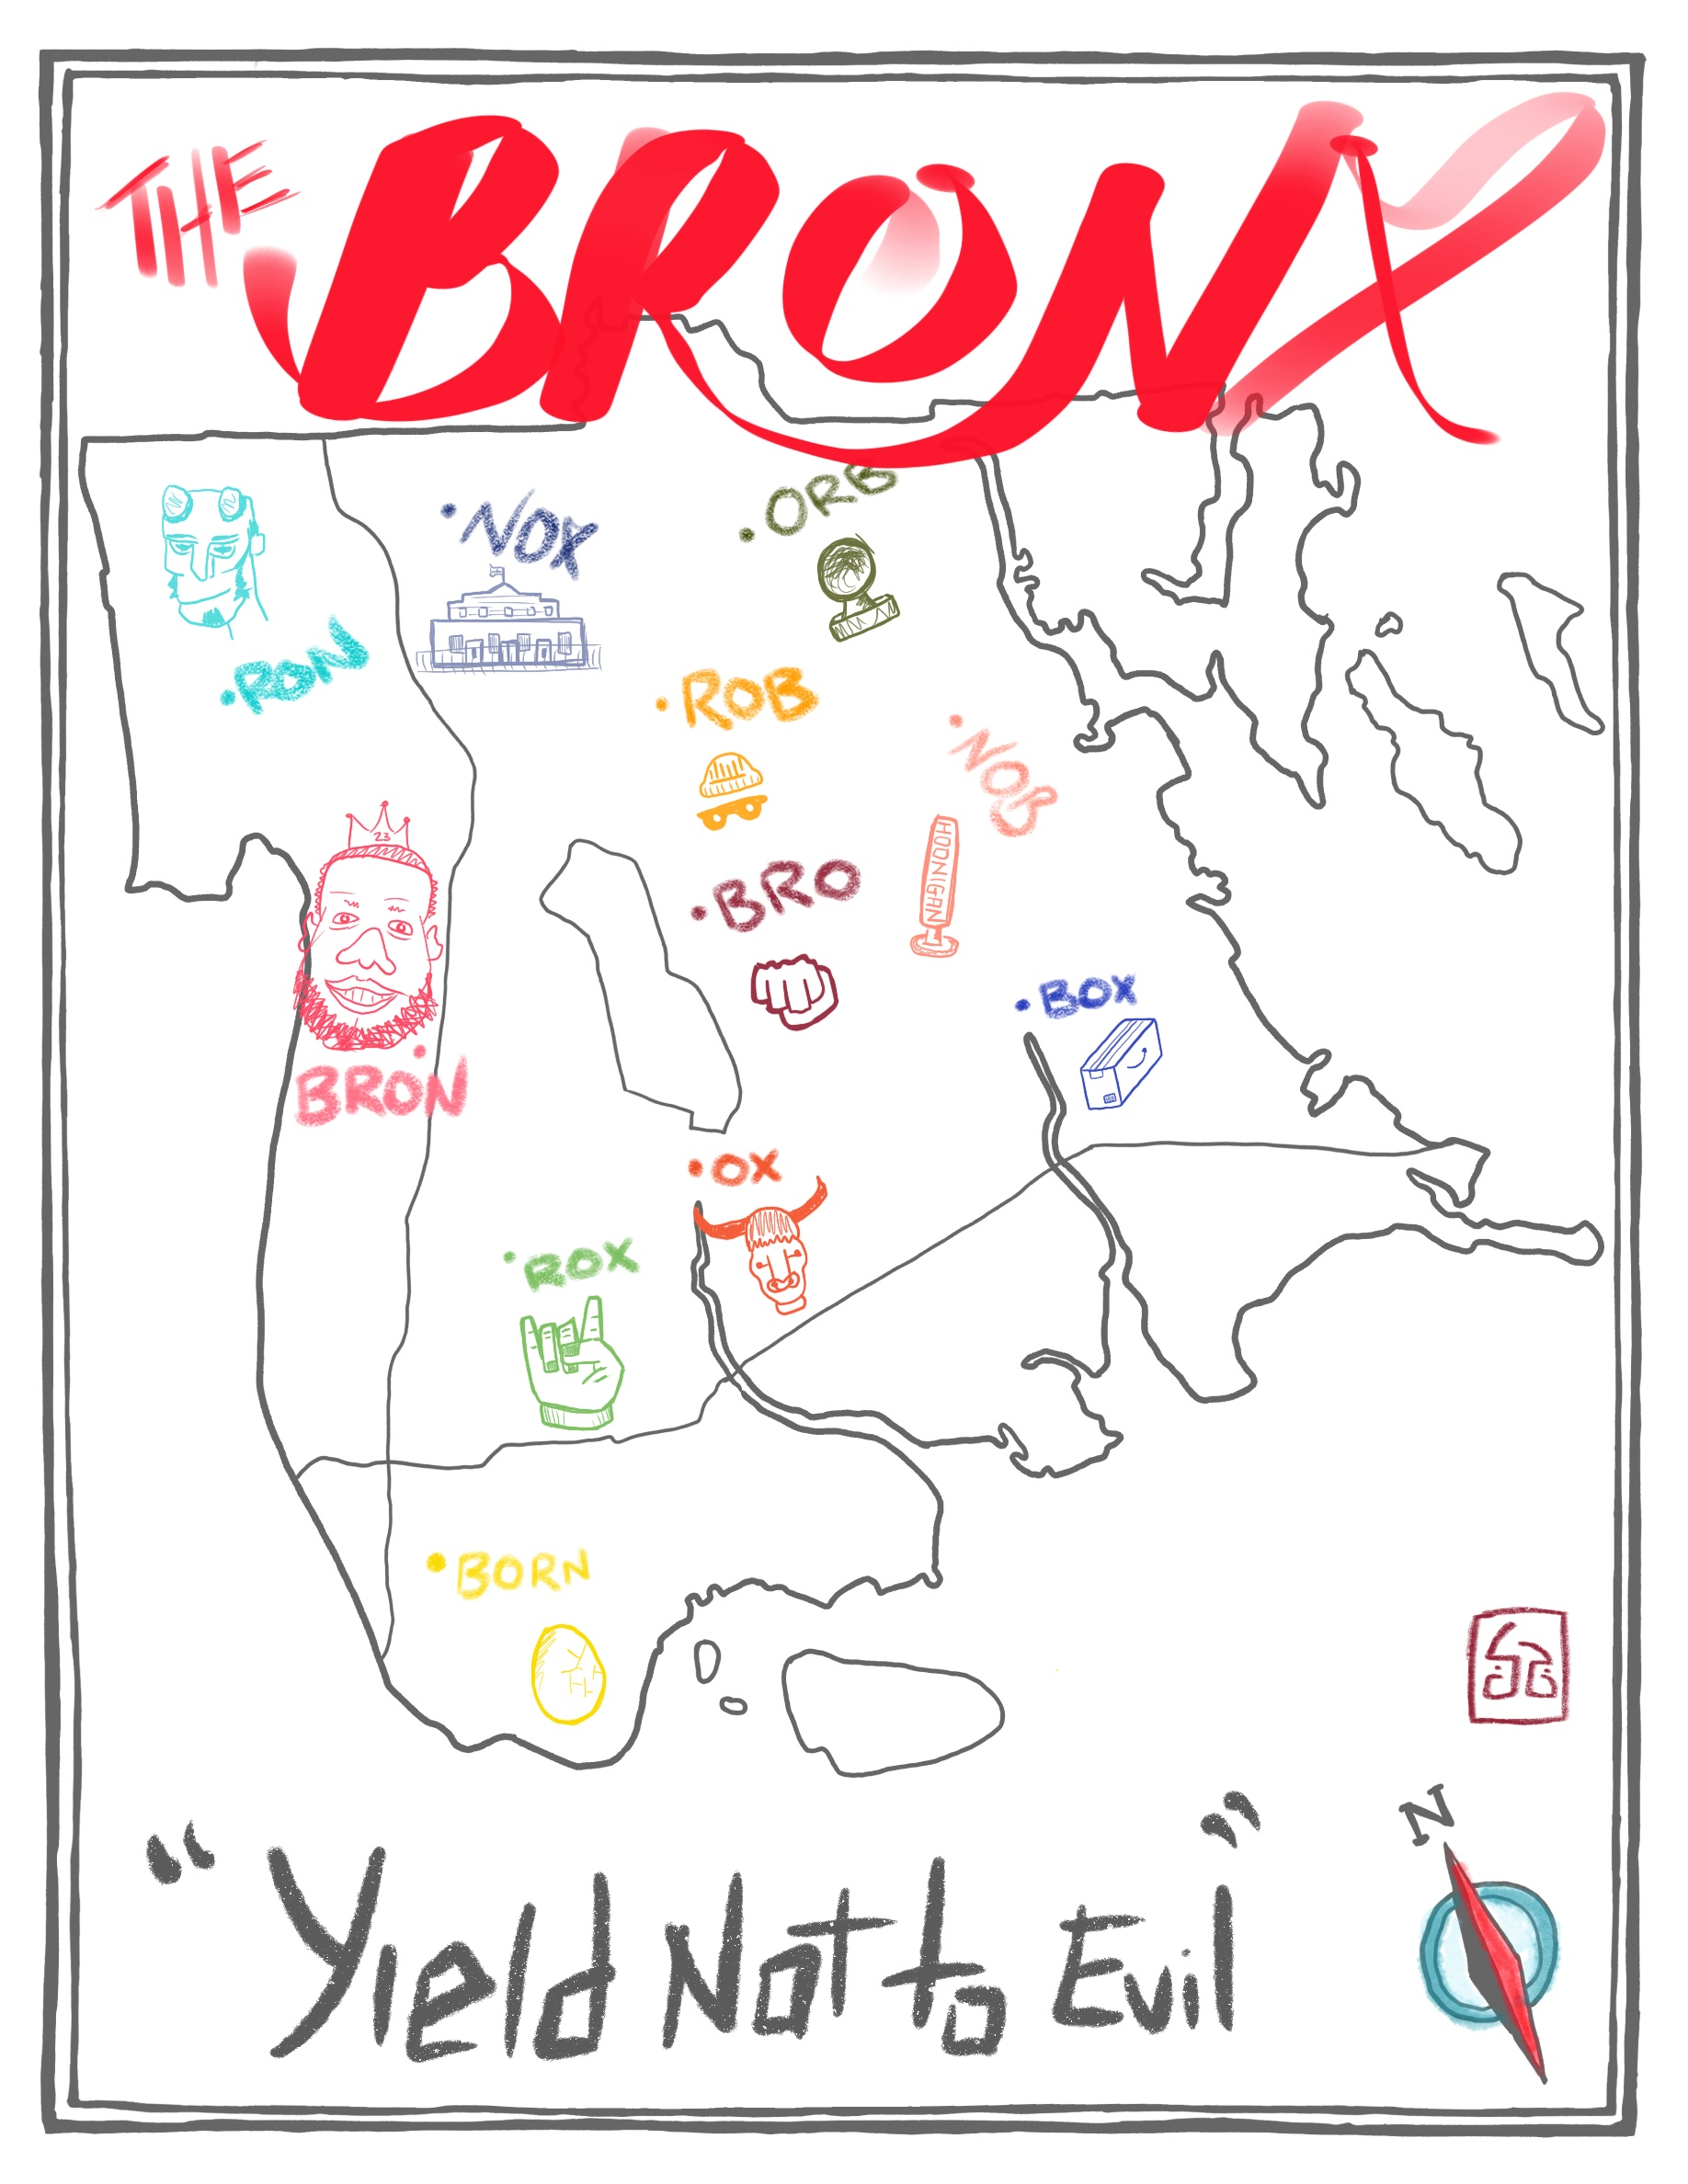 Simon G, Mapping the Bronx